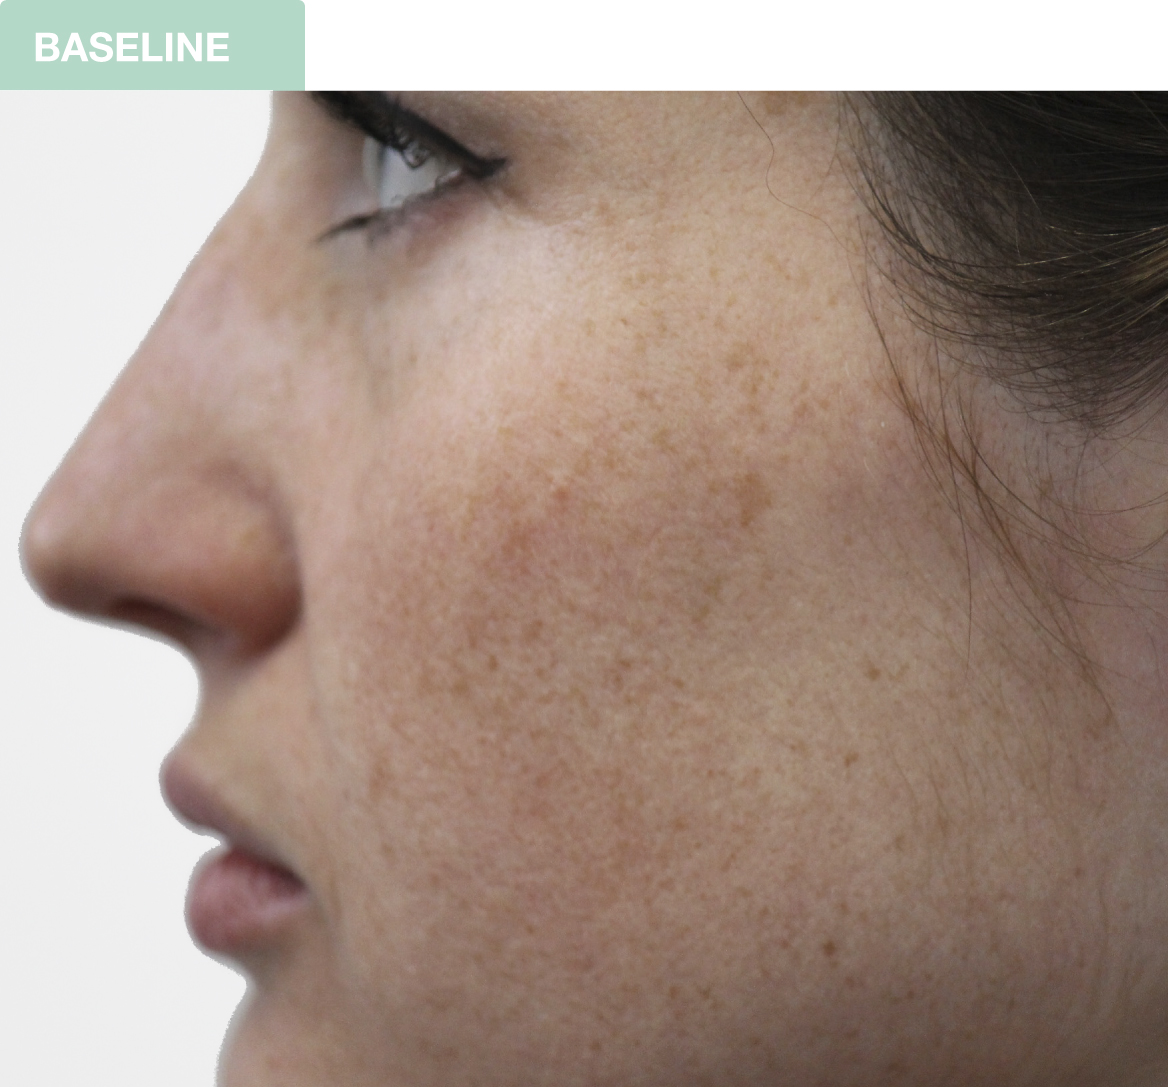 Skin condition prior to the chemical peel